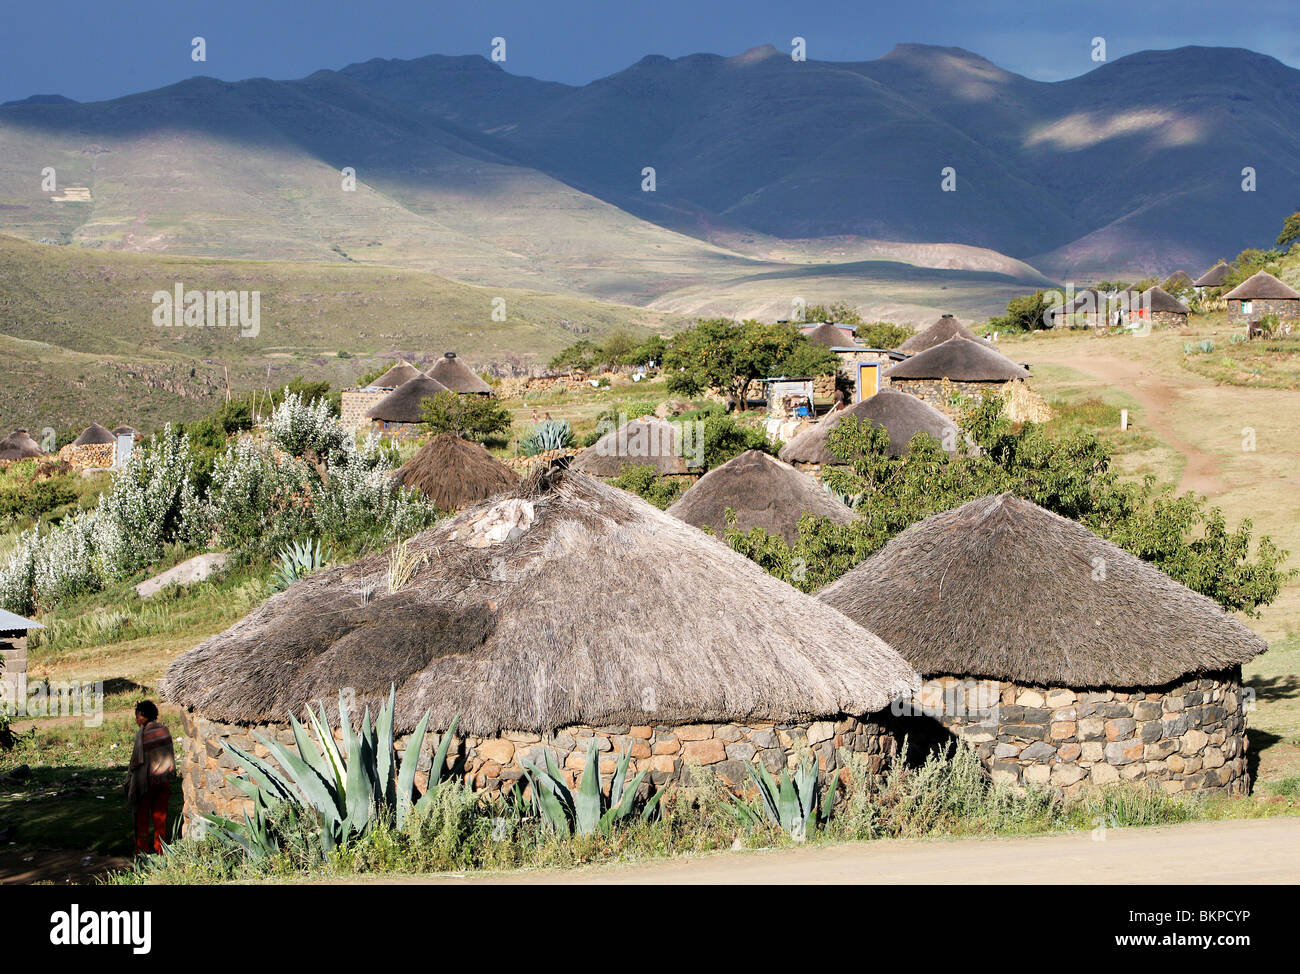 Traditional Basotho rondoval house made of stone with a thatch roof in Lesotho, Southern Africa Stock Photo